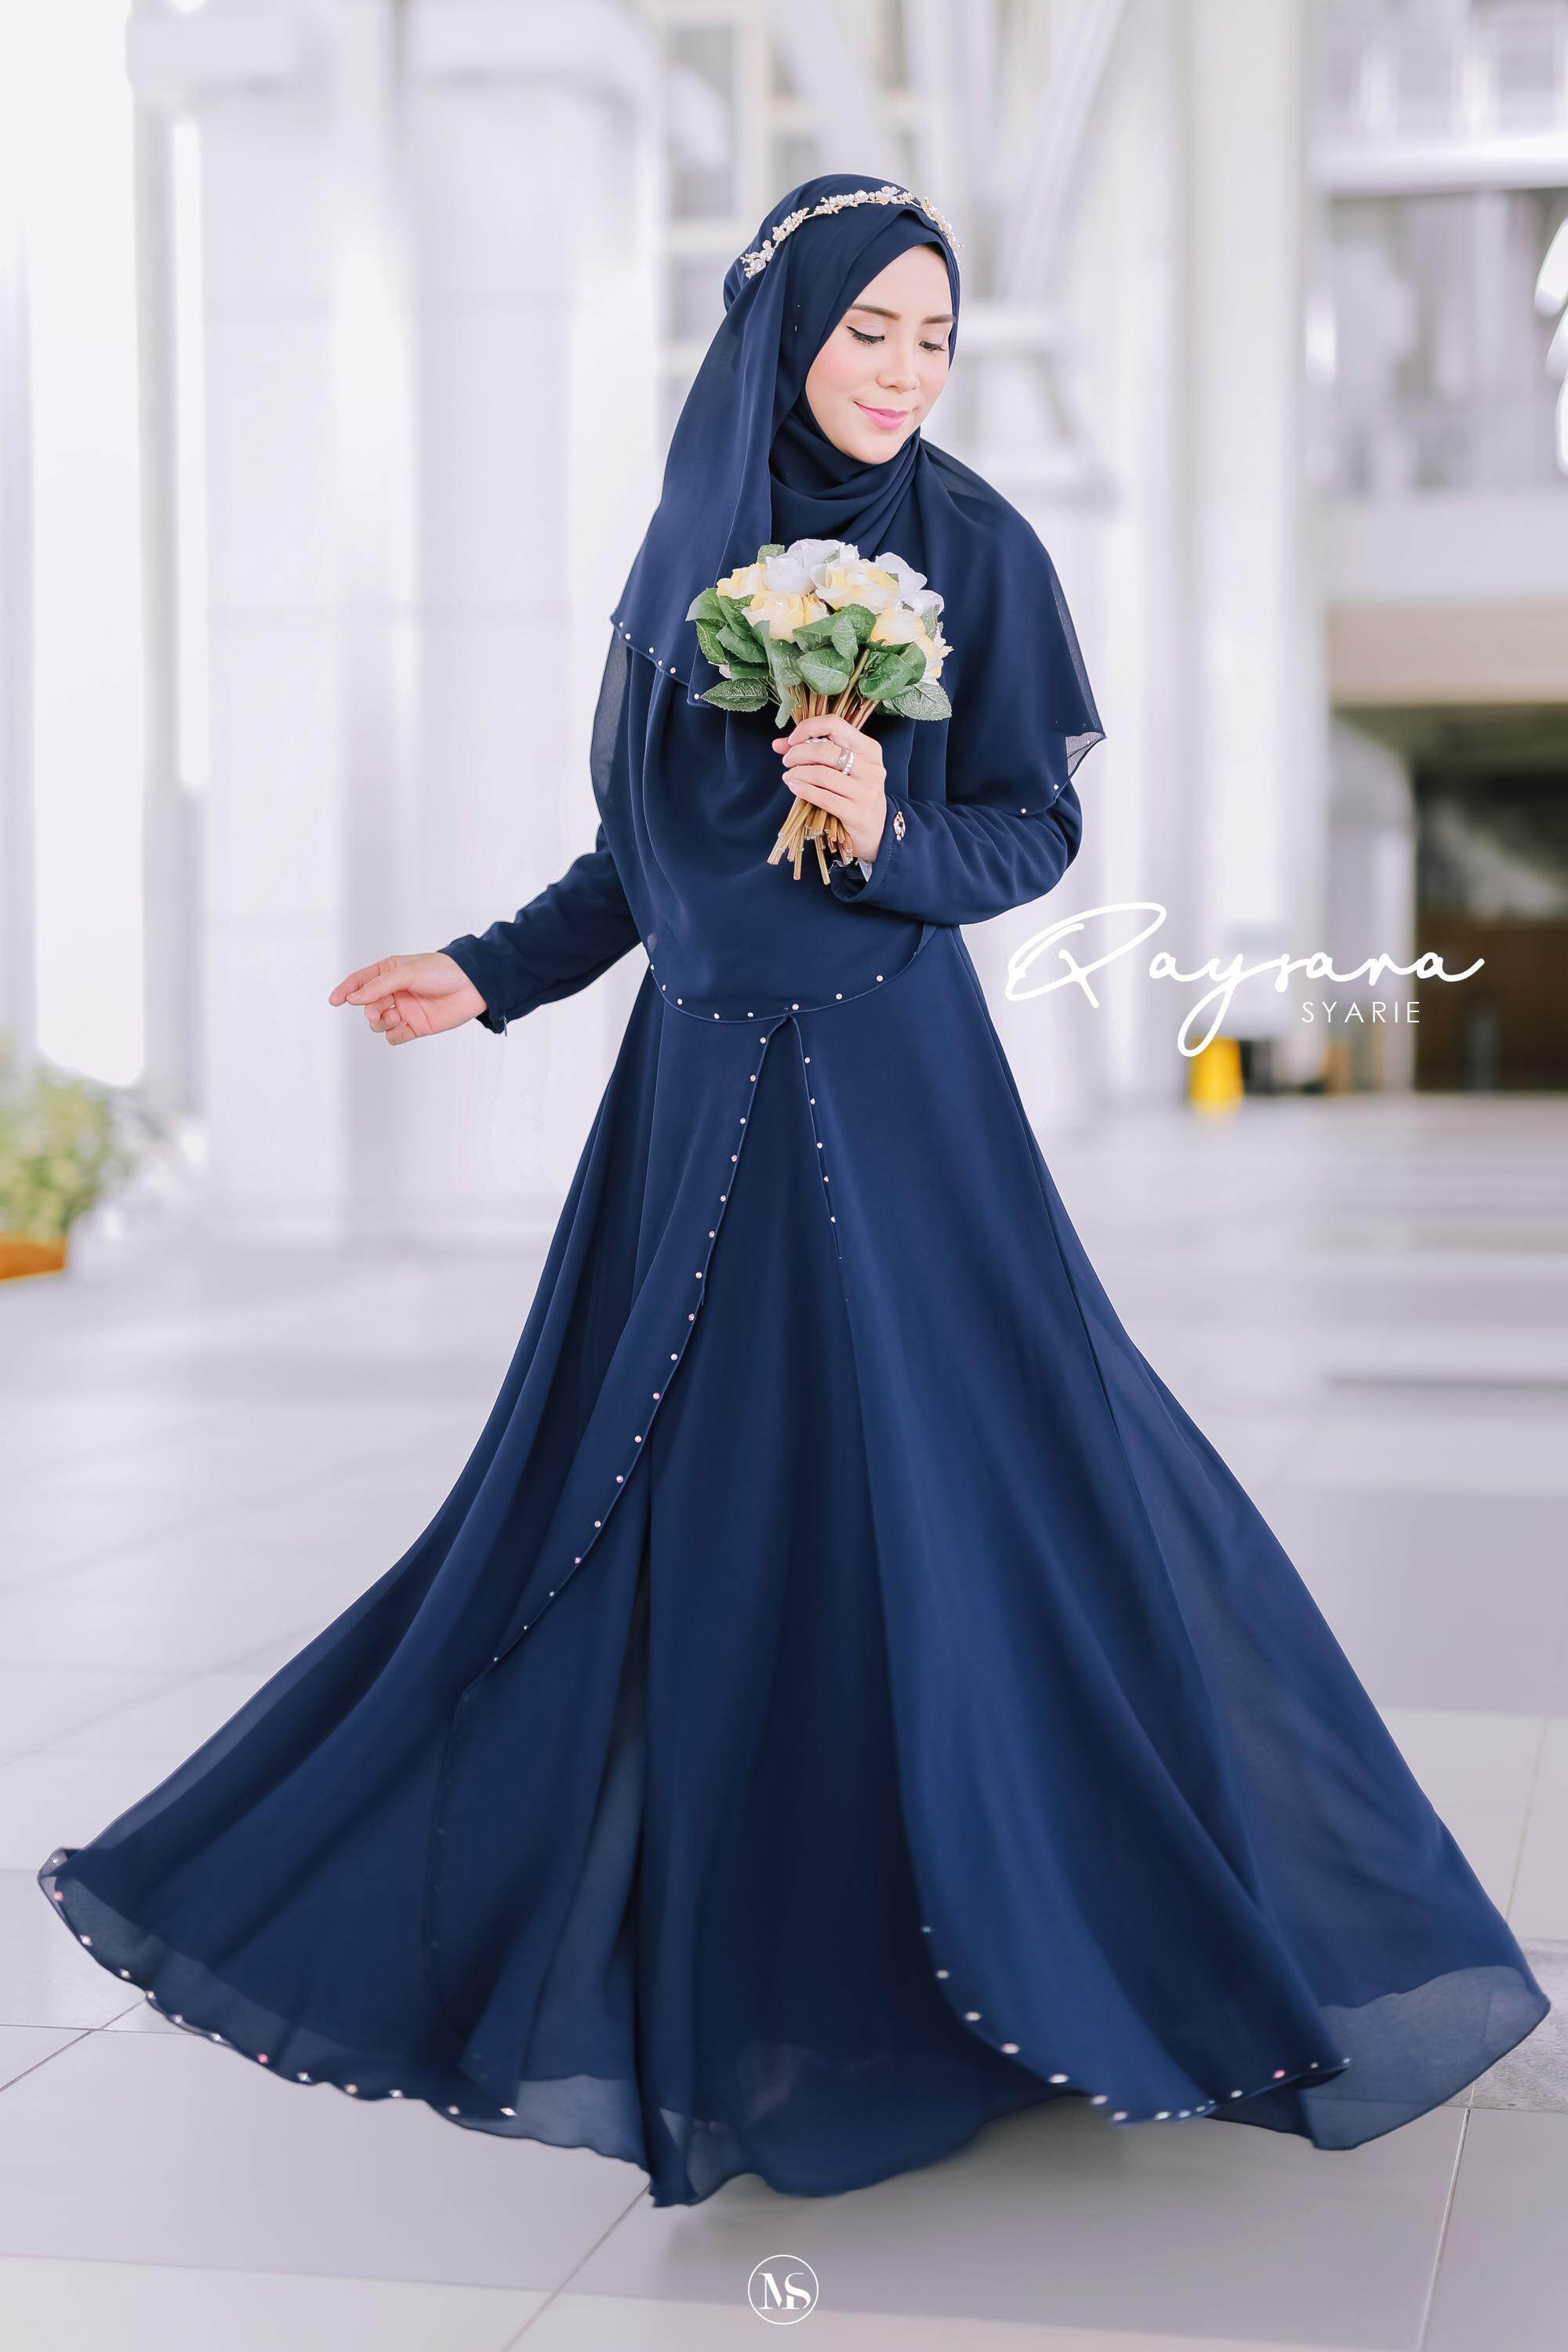 QAYSARA JUBAH TUNANG KAHWIN BAJU RAYA BRIDESMAID BAJU LABUH free tudung 1111,  1111 set pakaian Pengantin, BATU SWROVSKI , bridesmaid, maid in honour- others